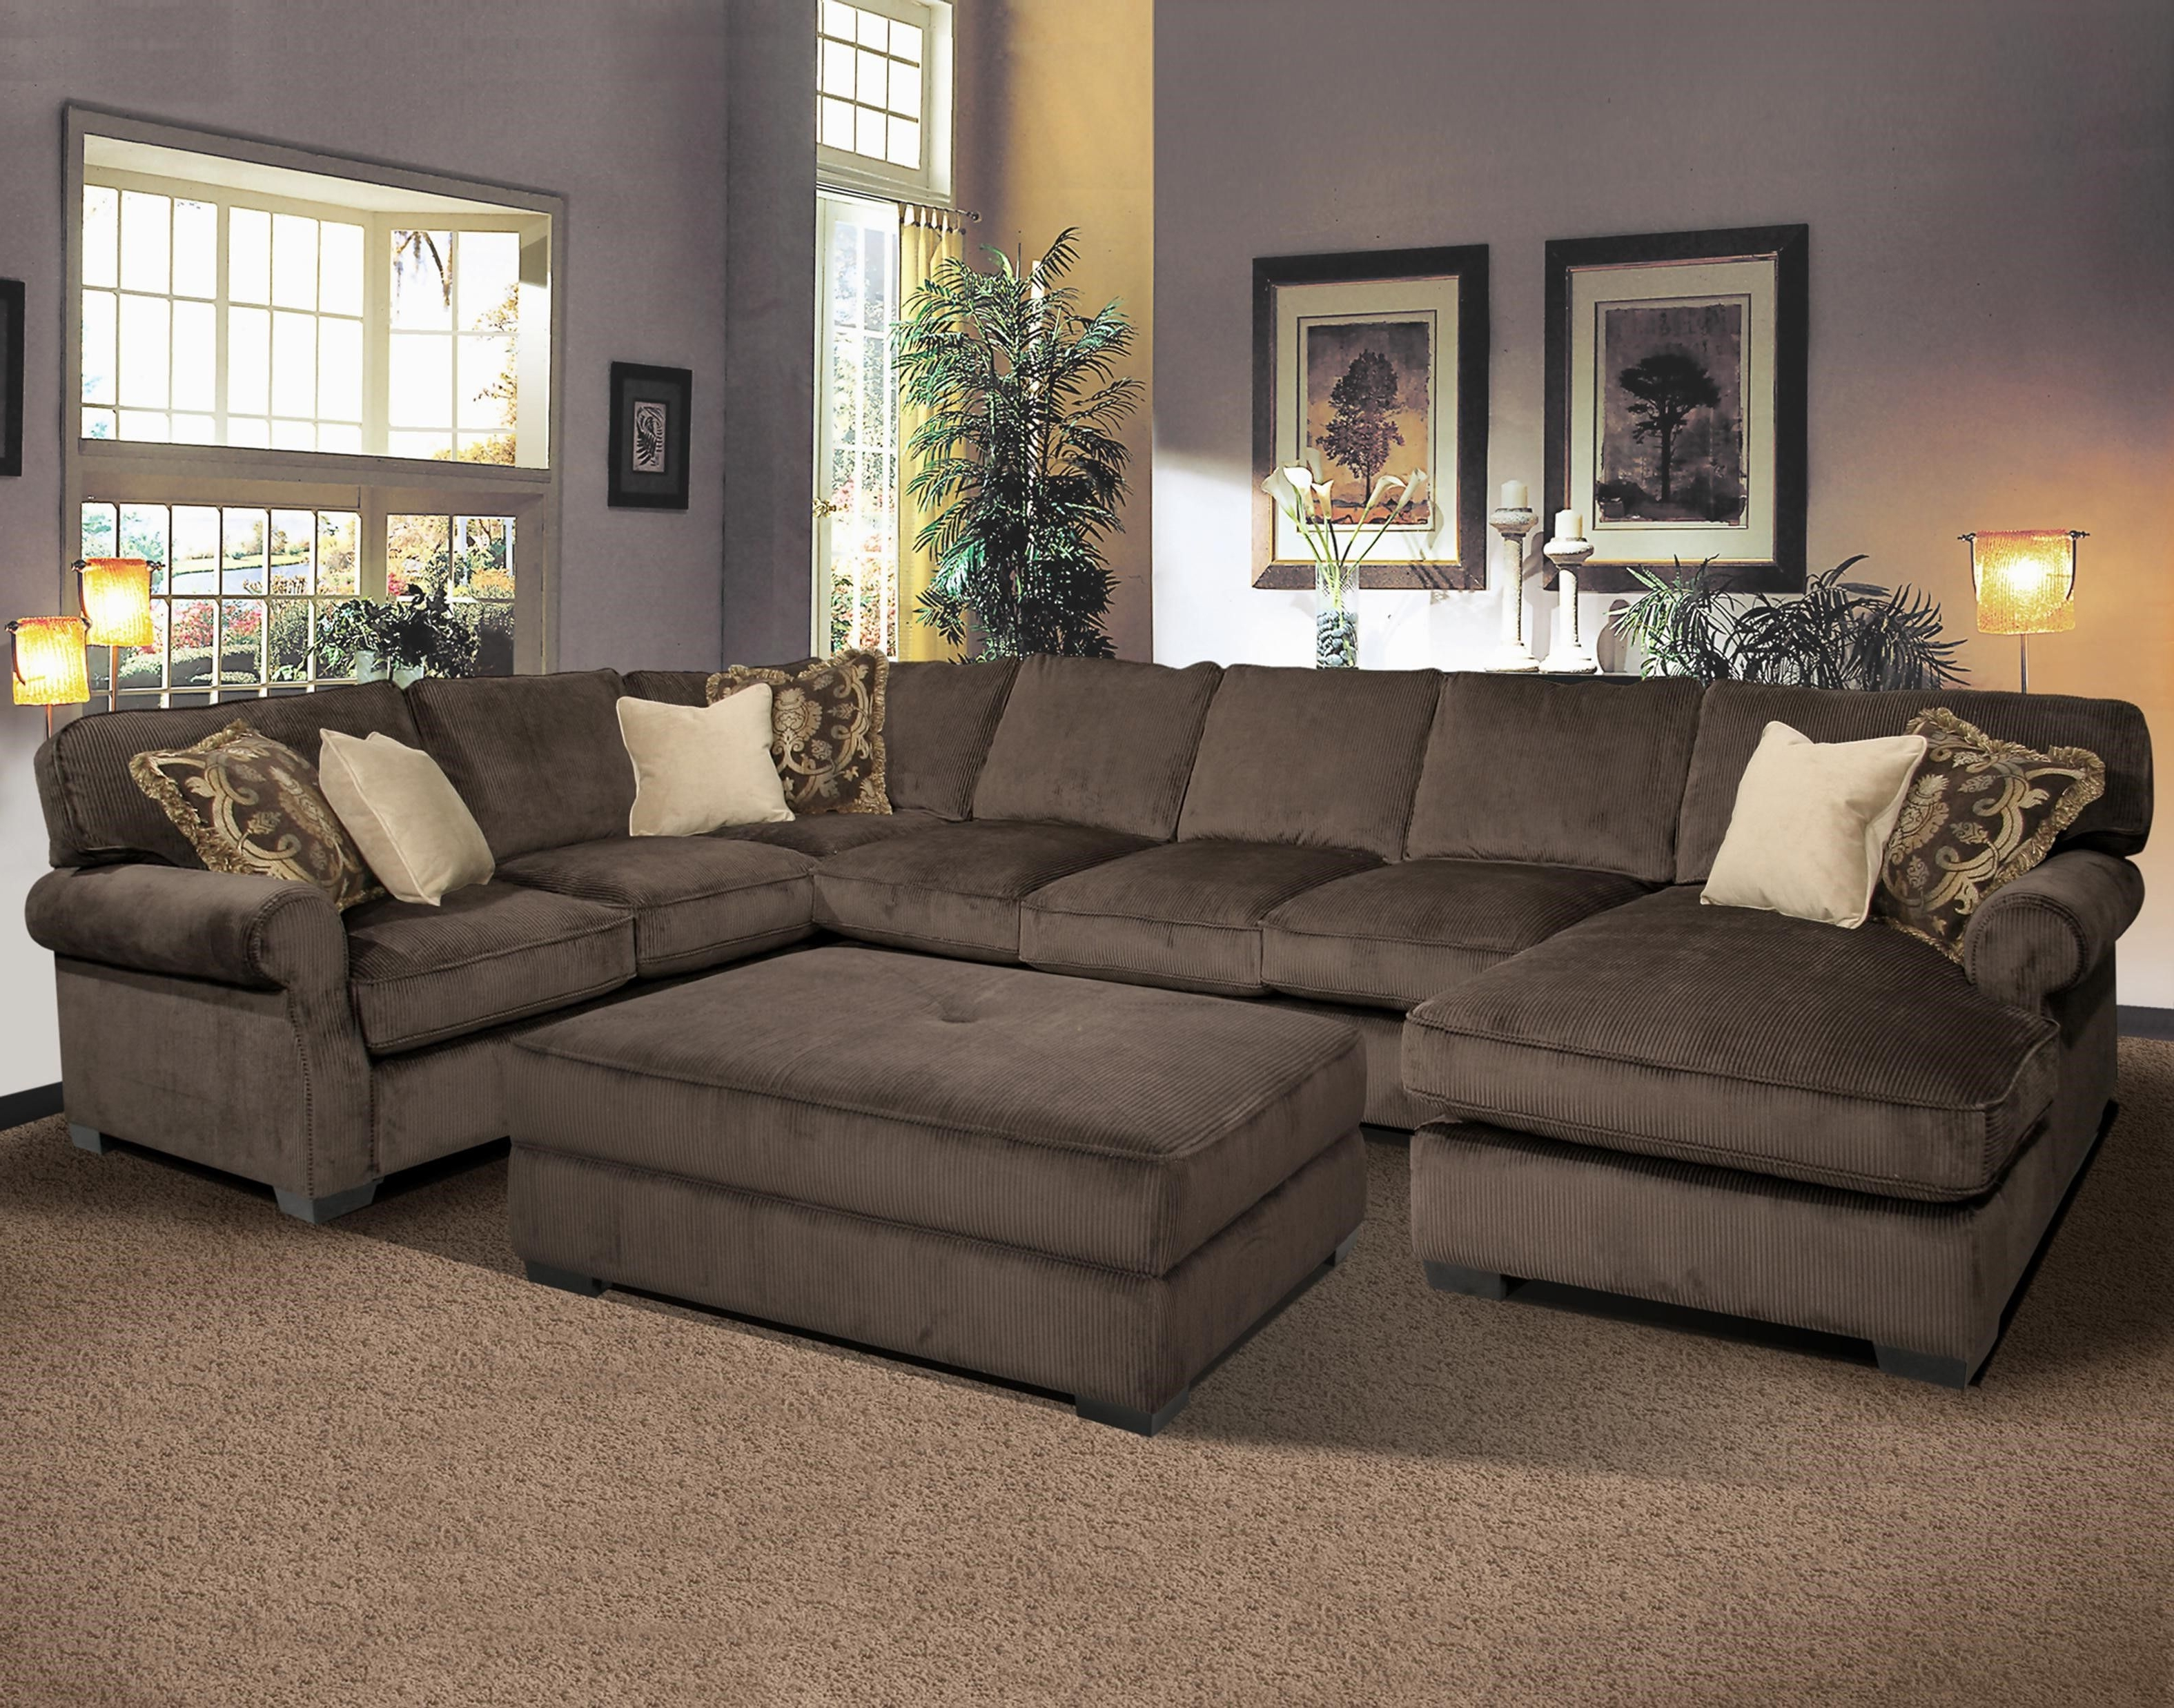 Comfortable Living Room Sofas Design With Elegant Overstuffed Throughout Most Popular Chaise Lounge Sofas For Sale (View 12 of 15)